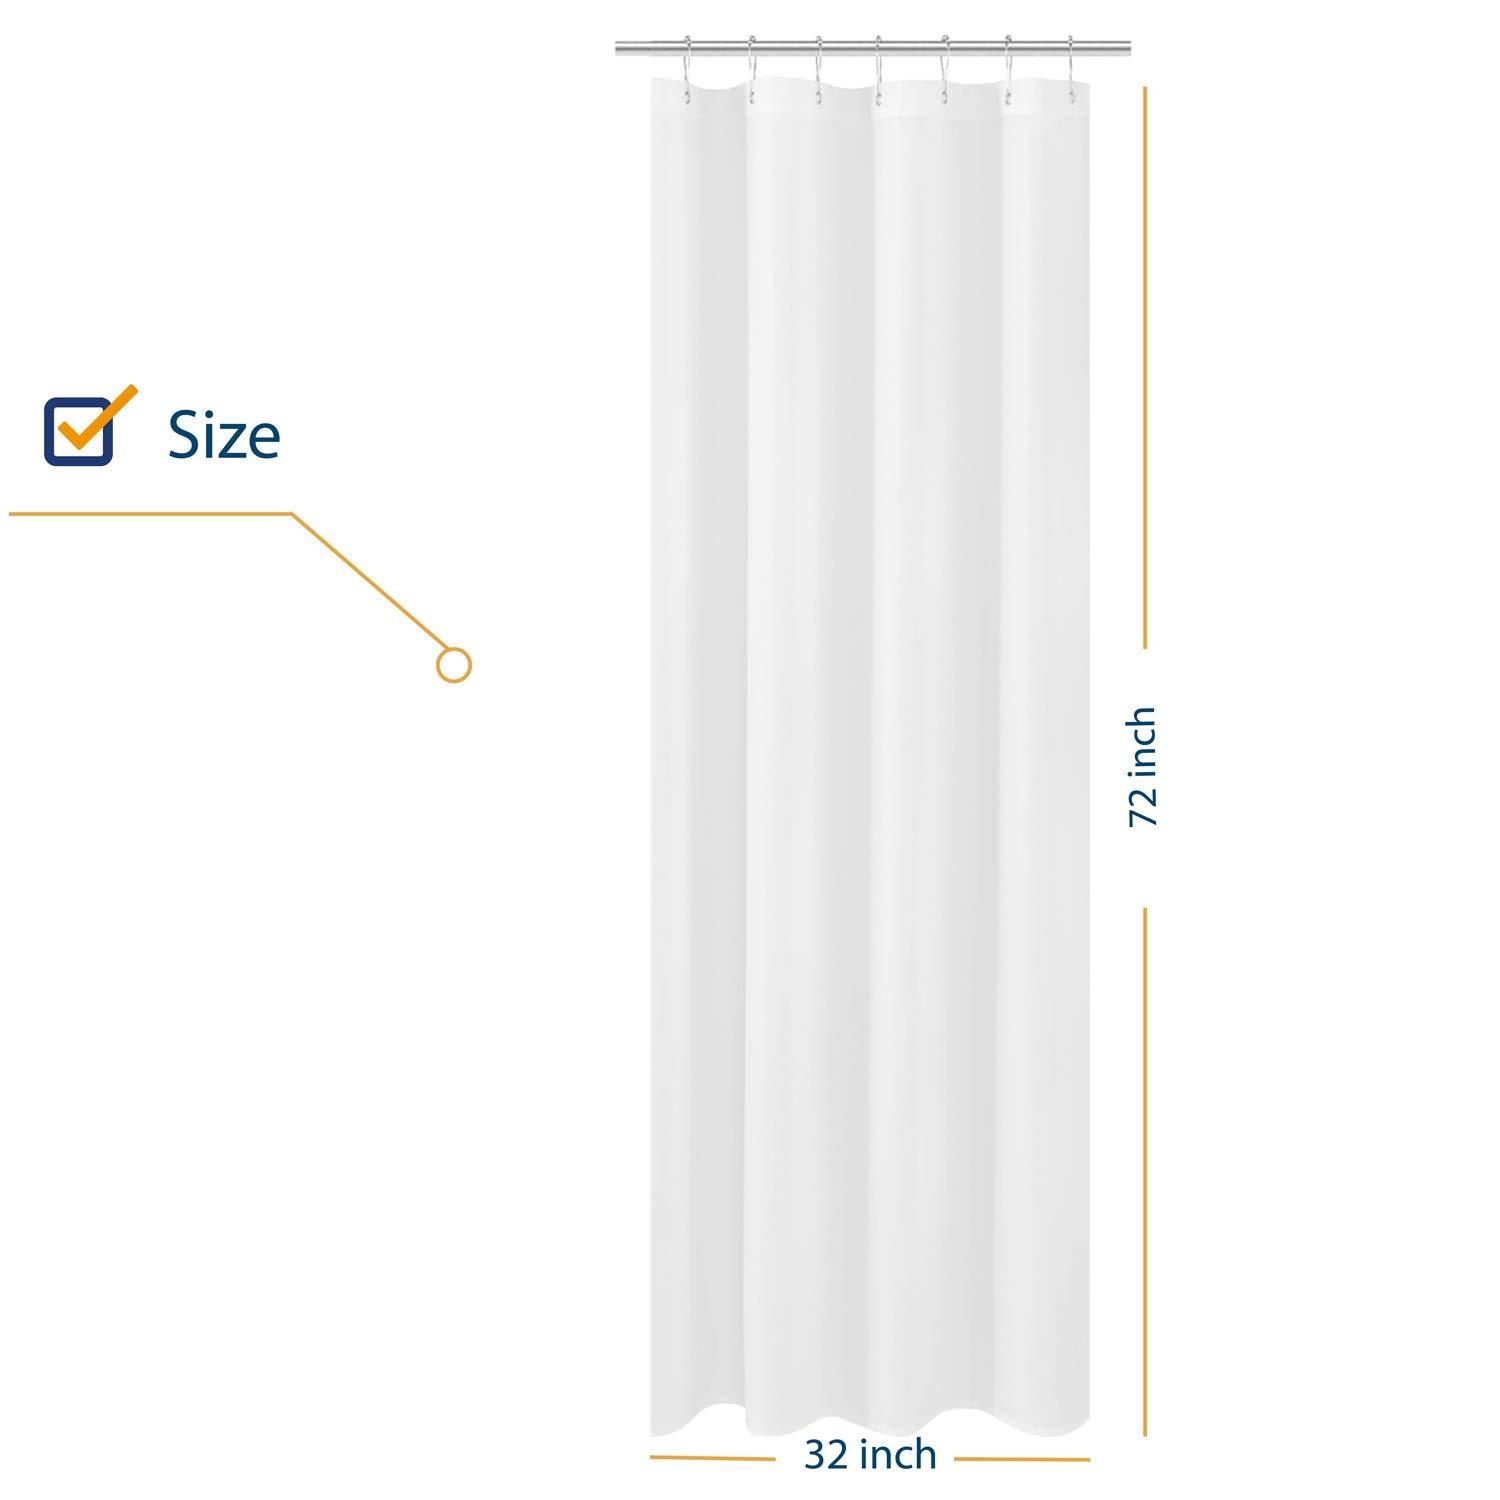 n y home small stall shower curtain liner fabric 32 x 72 inch narrow size hotel quality washable water repellent white bathroom curtains with